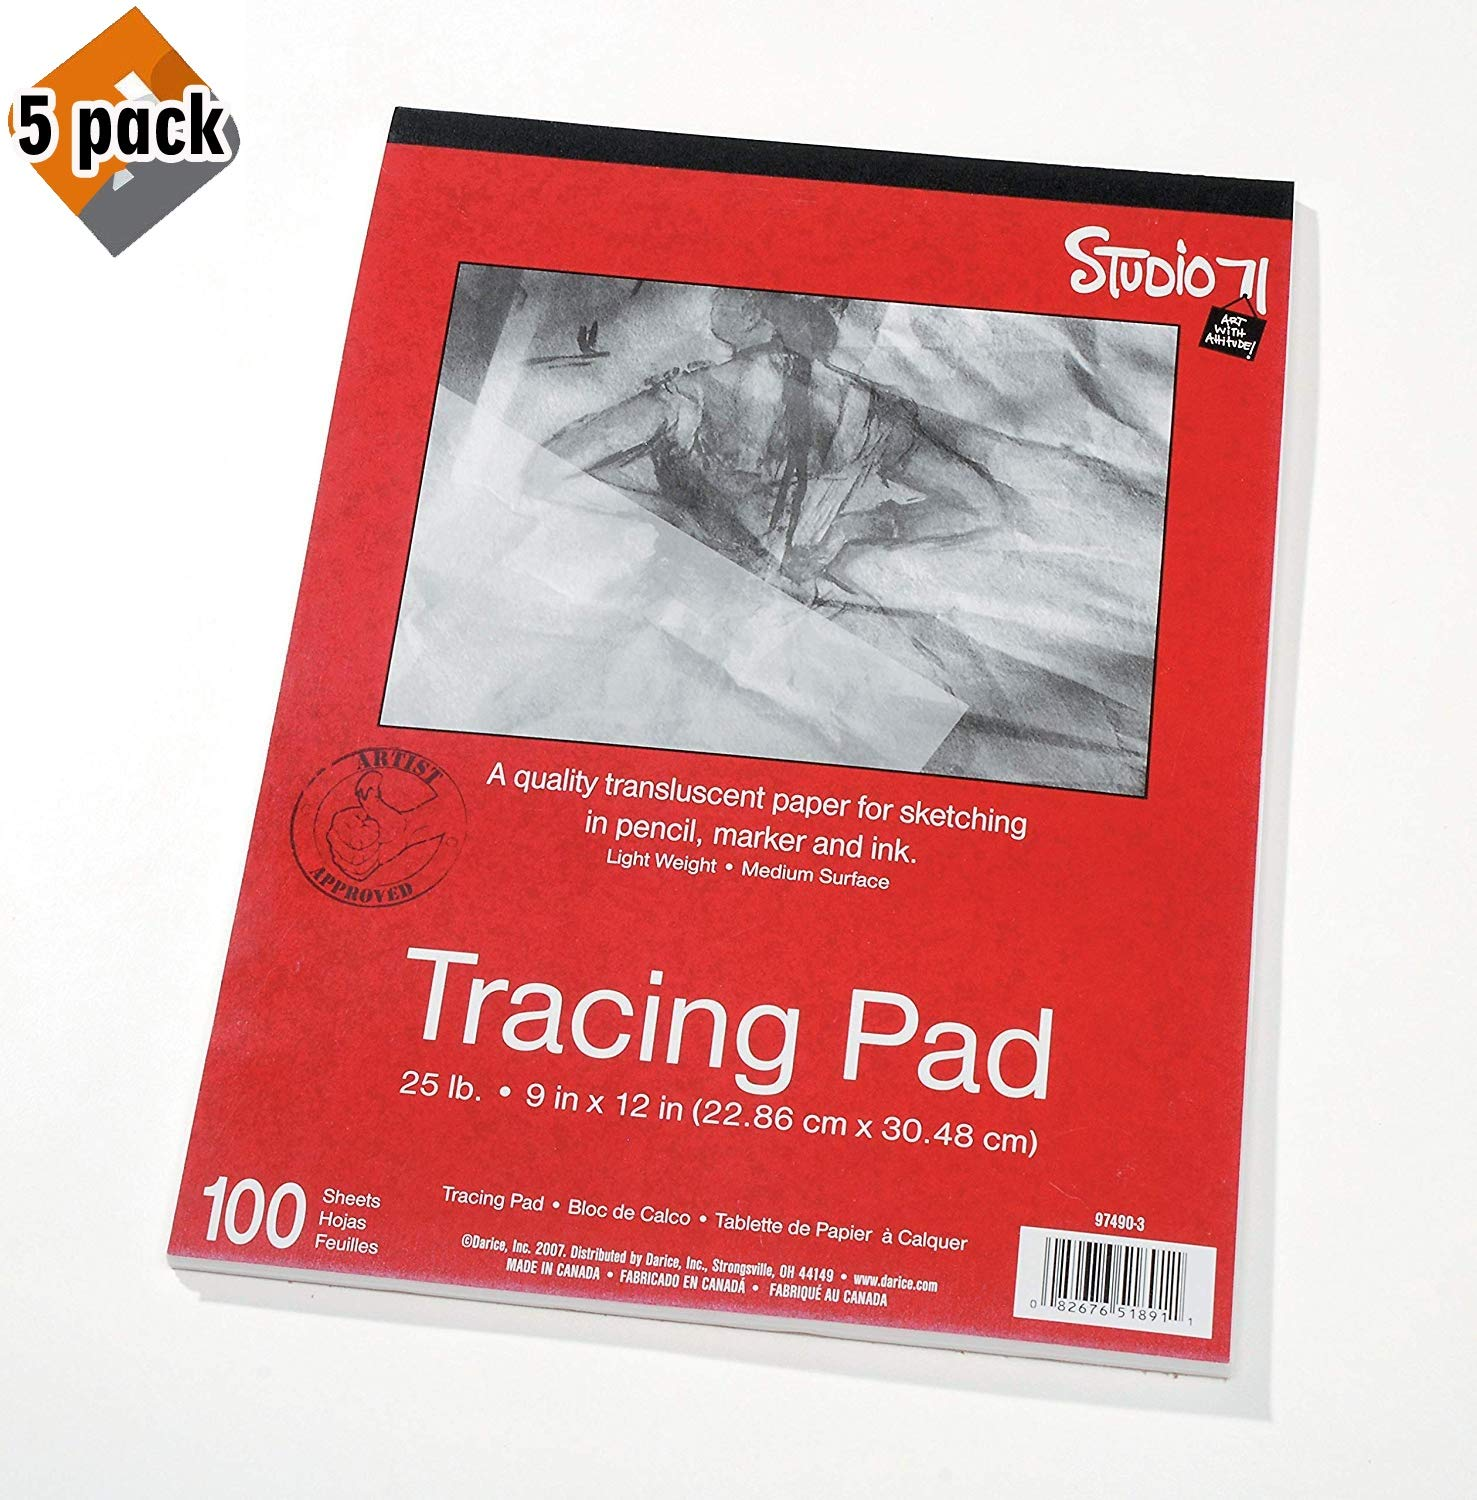 """Darice 9""""x12"""" Artist's Tracing Paper, 100 Sheets – Translucent Tracing Paper for Pencil, Marker and Ink, Lightweight, Medium Surface (97490-3) - 5-Pack"""